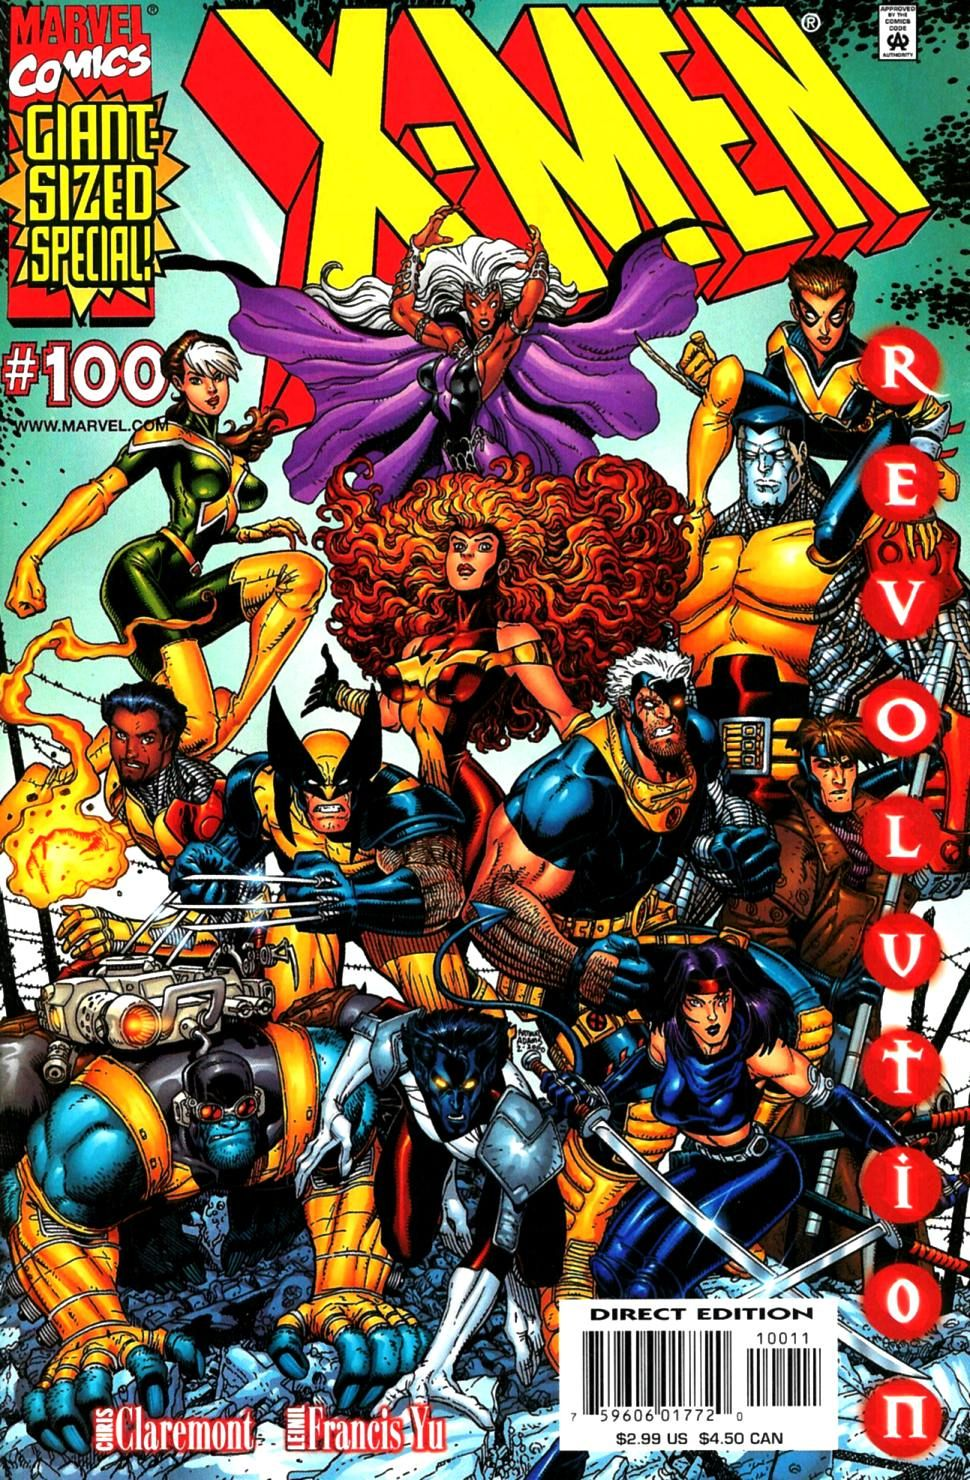 X Men 1991 Issue 100 Read X Men 1991 Issue 100 Comic Online In High Quality X Men Comics Marvel